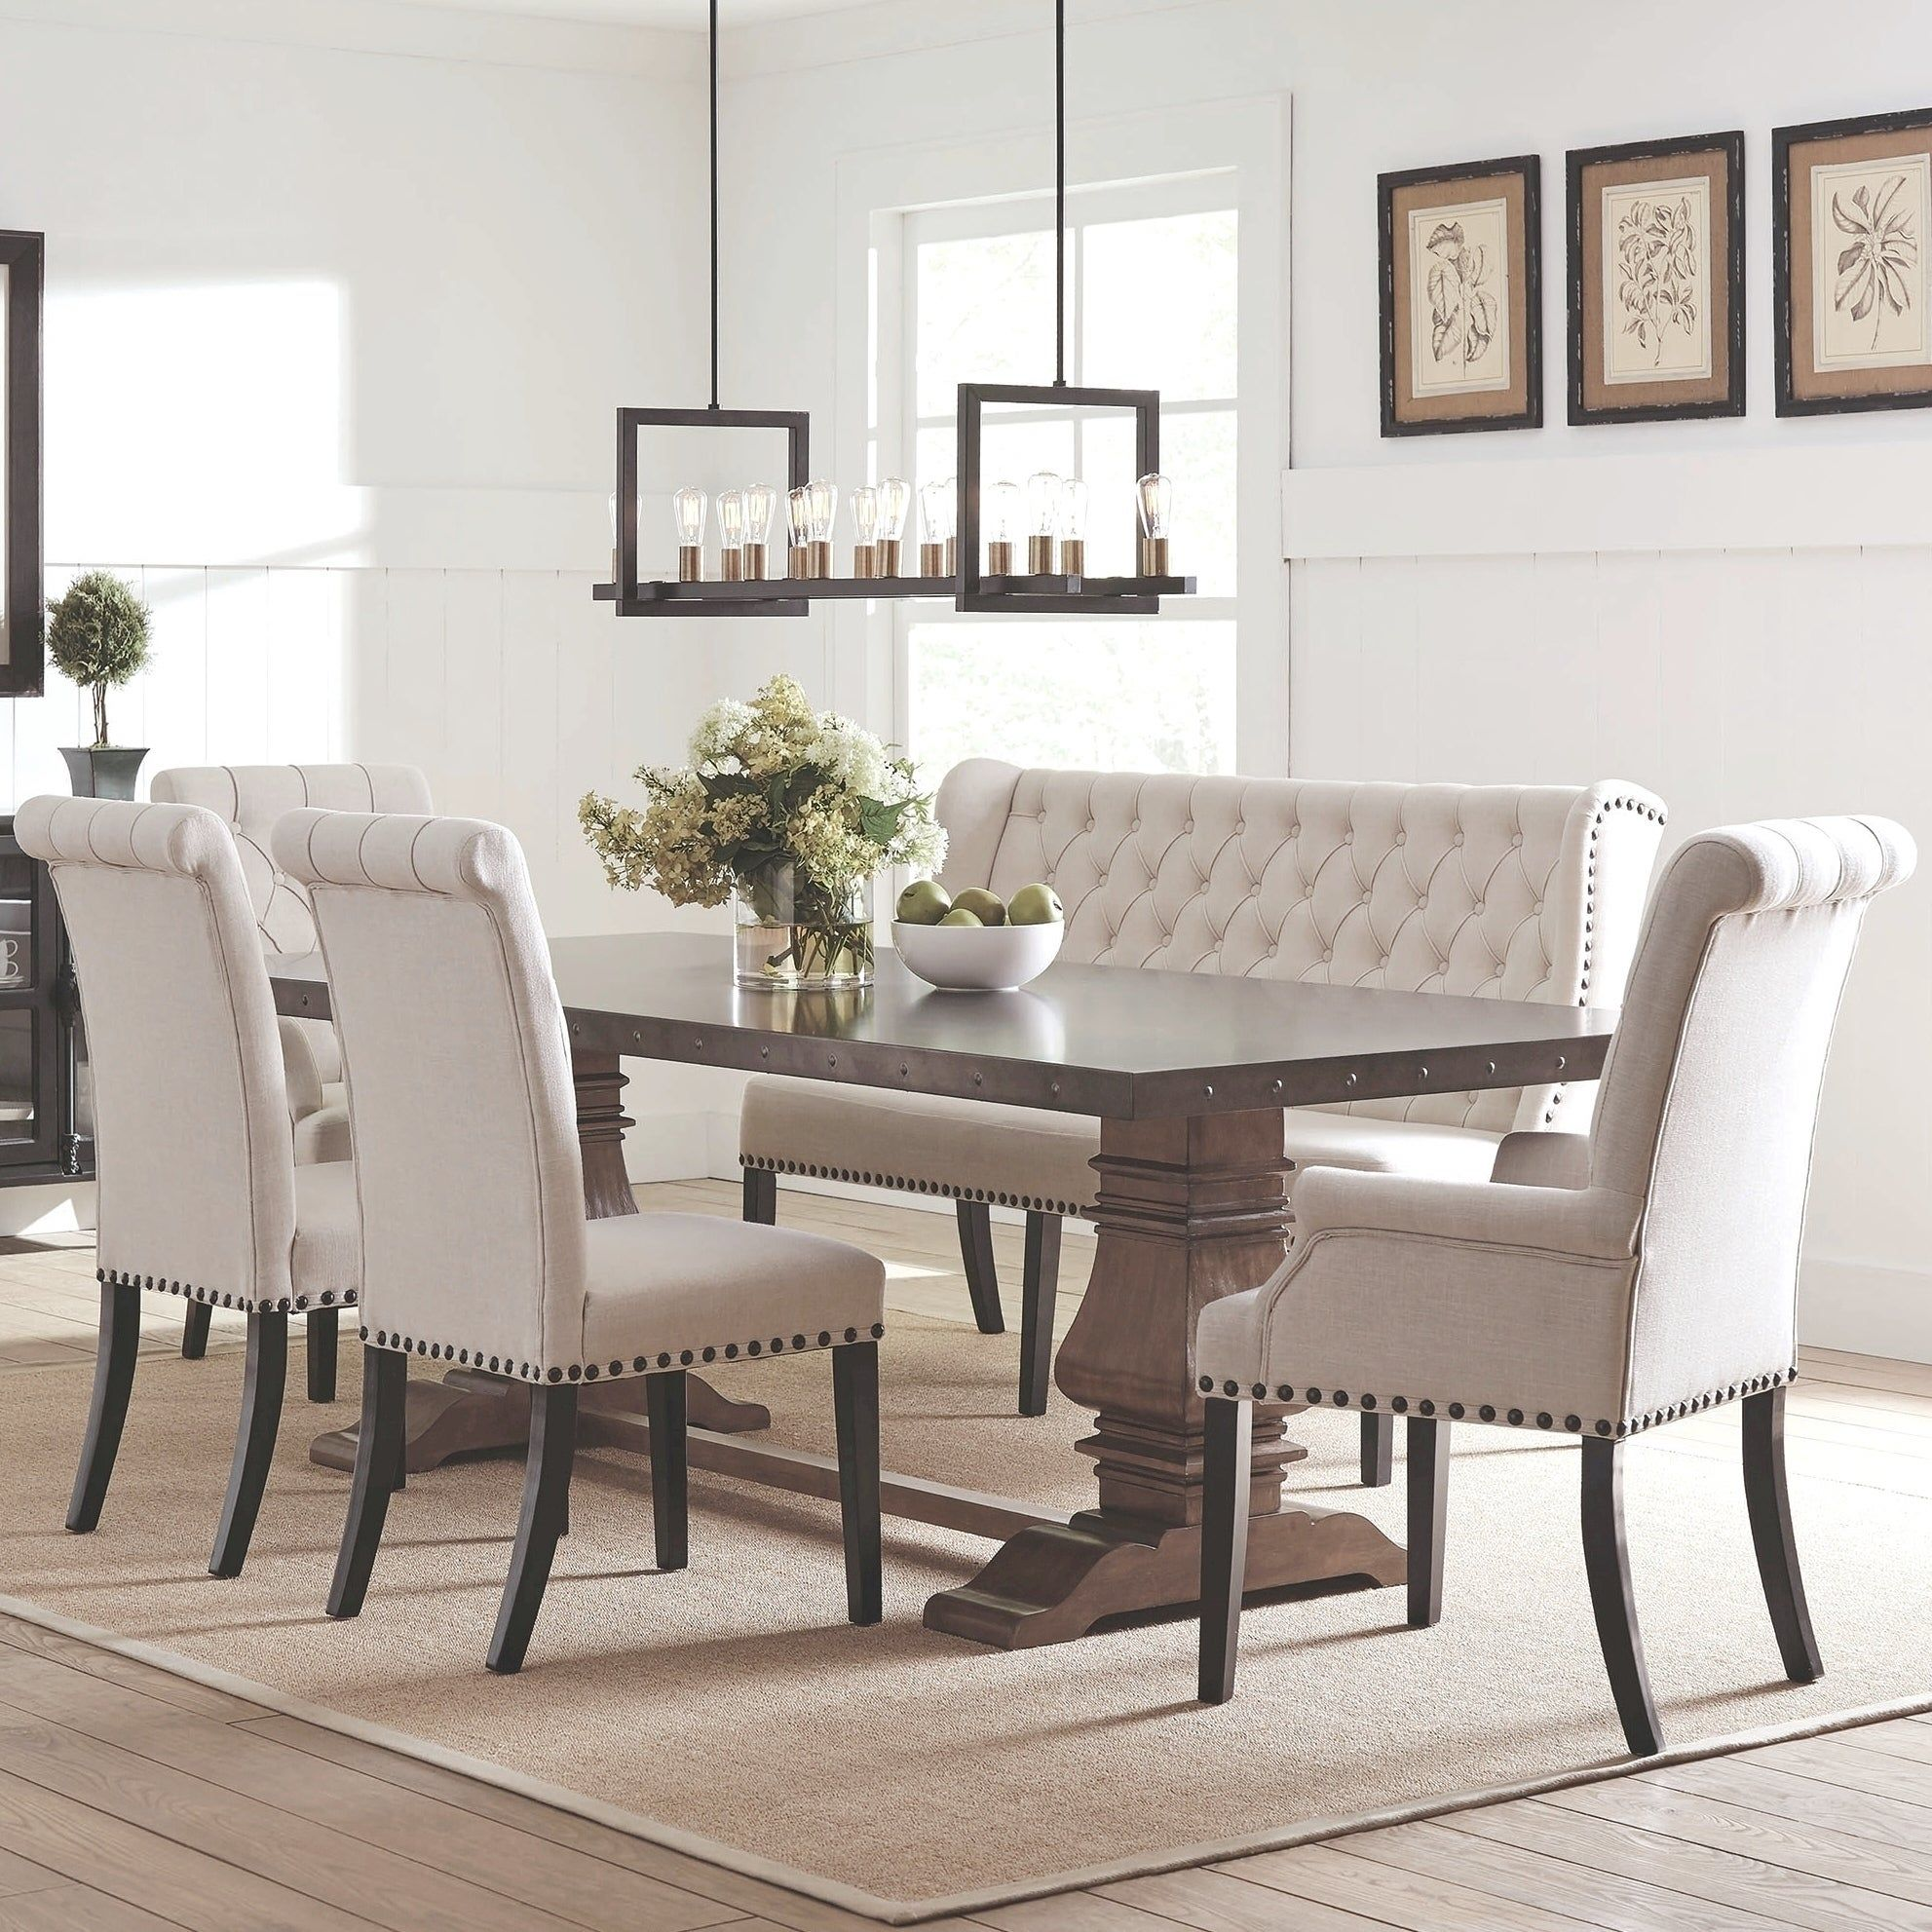 I Love This Dining Room Nothing Beats A Round Table And Upholstered Chairs For Hours Of C Round Dining Room